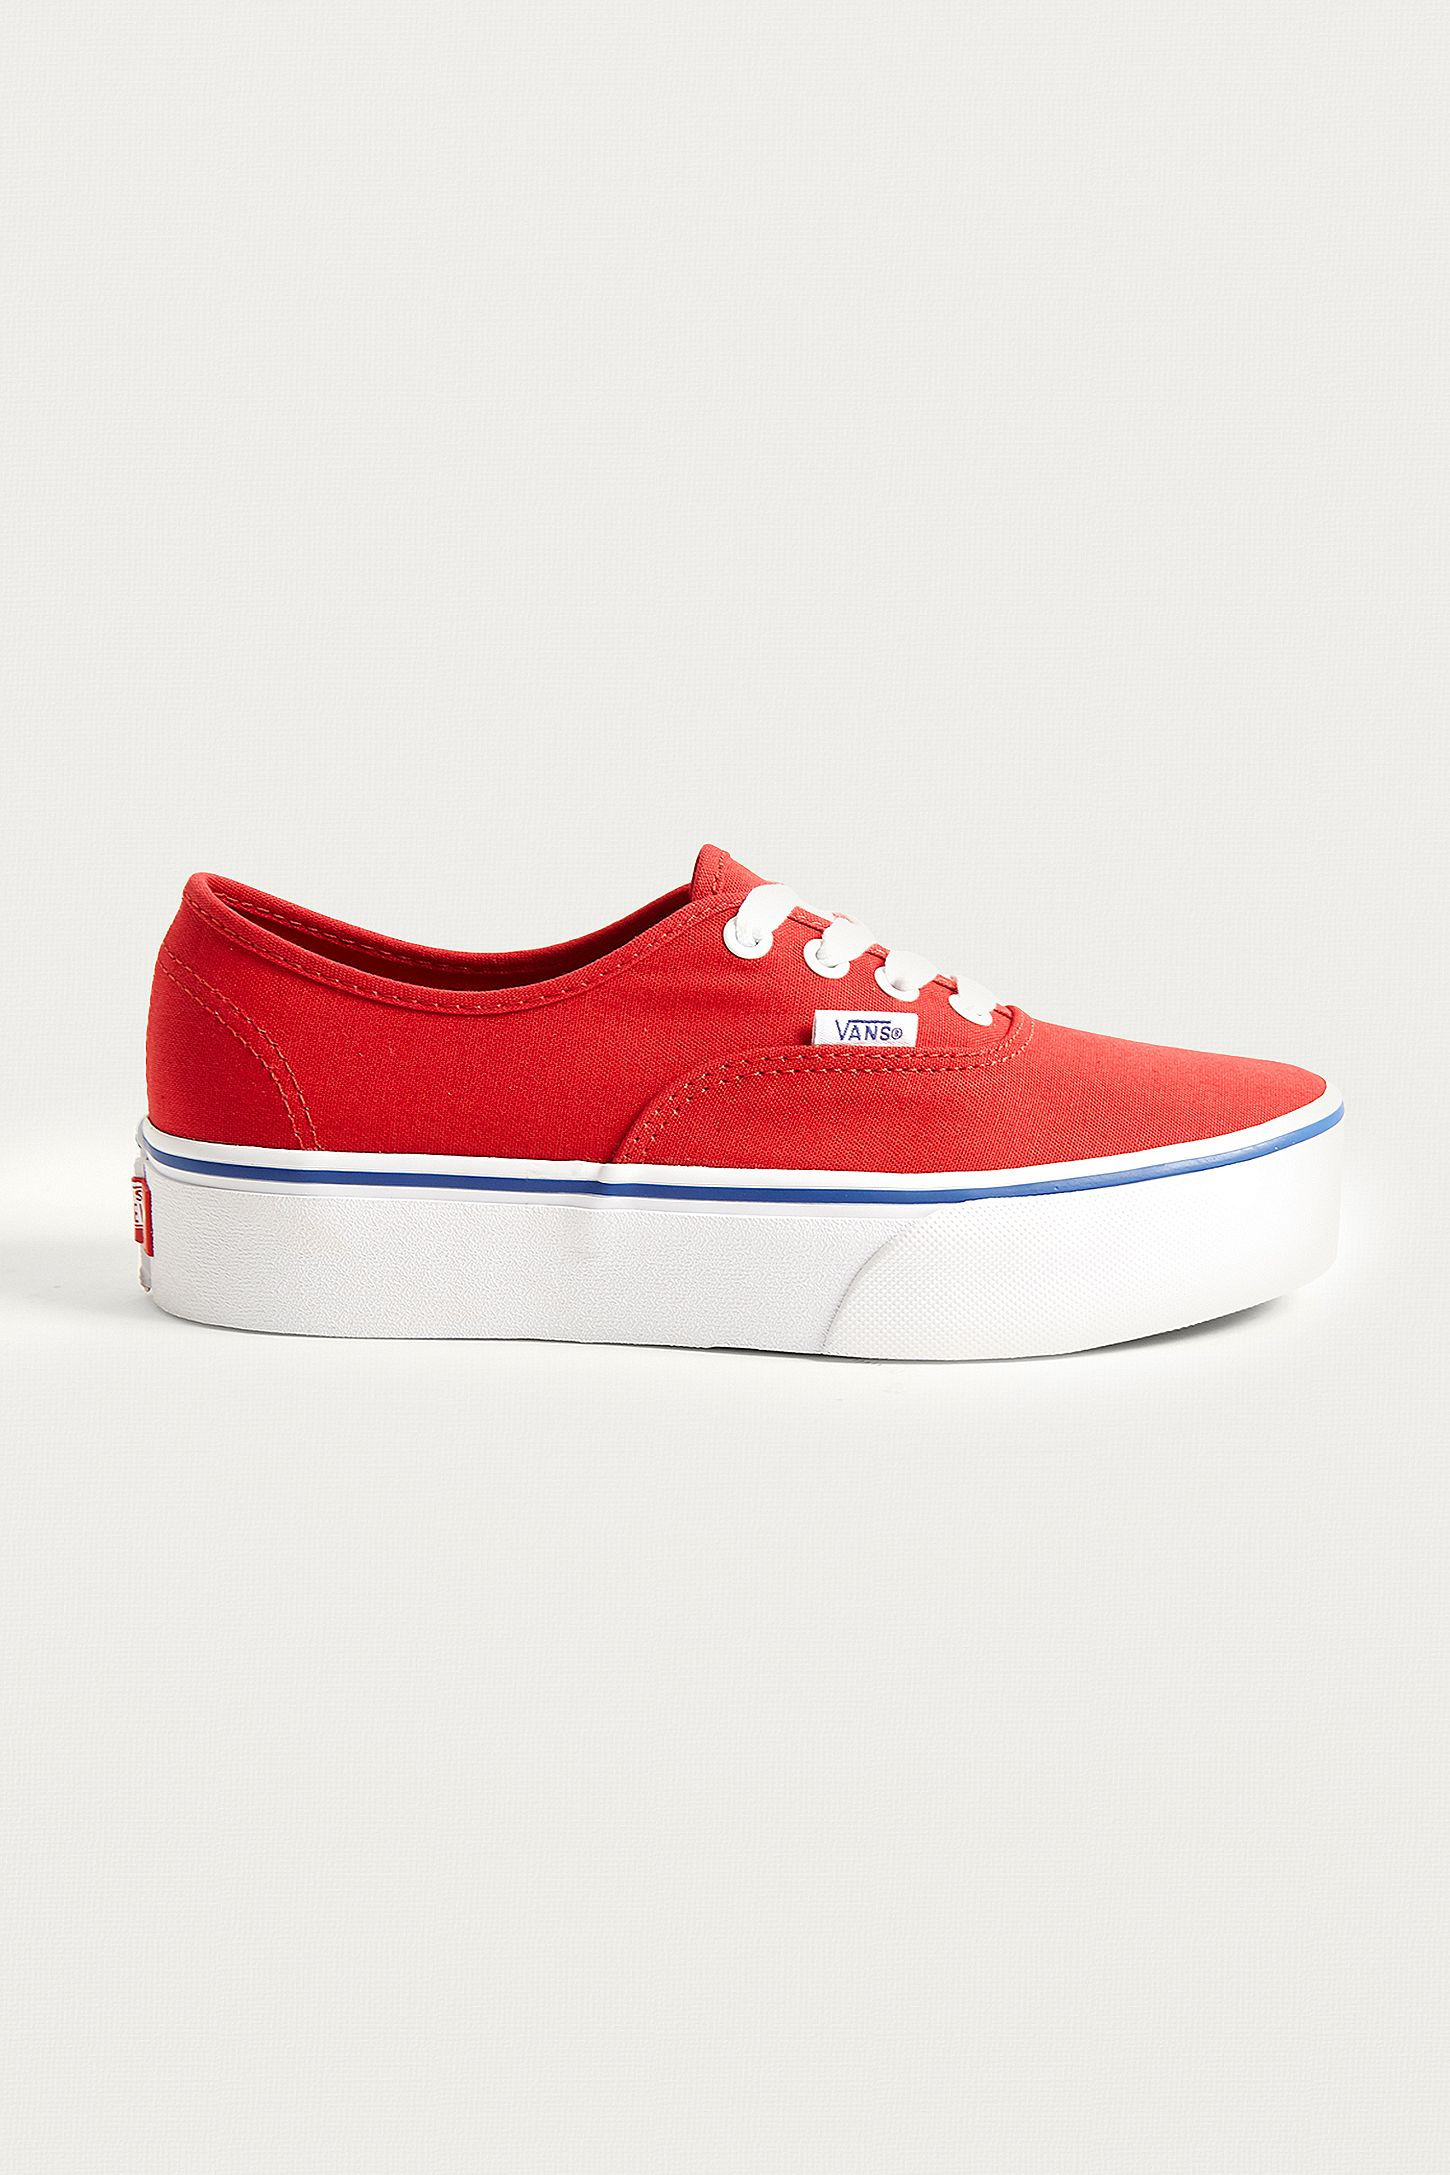 5672fa4d29 Vans Authentic Platform 2.0 Red Trainers. Click on image to zoom. Hover to  zoom. Double Tap to Zoom